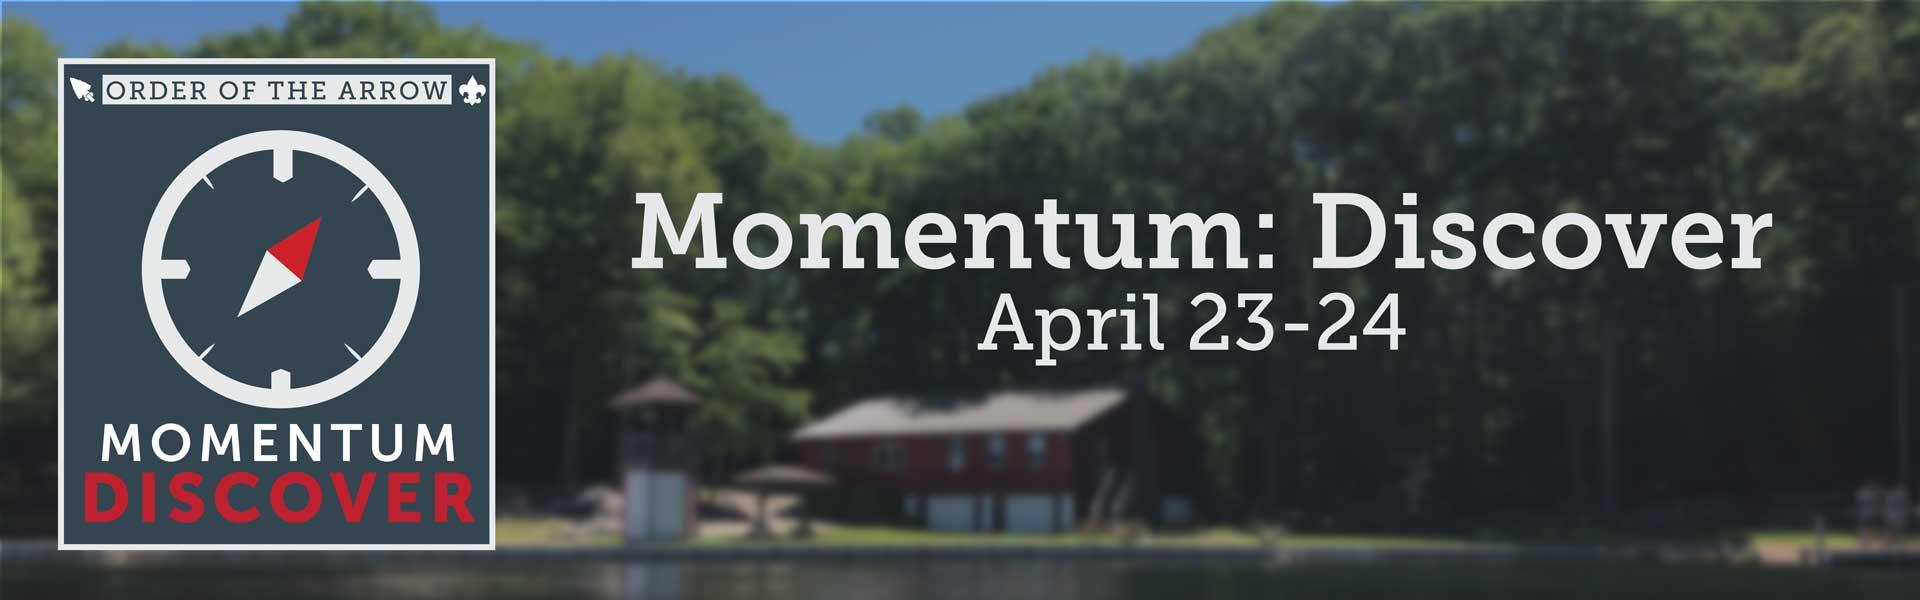 Momentum: Discover | April 23-24, 2021